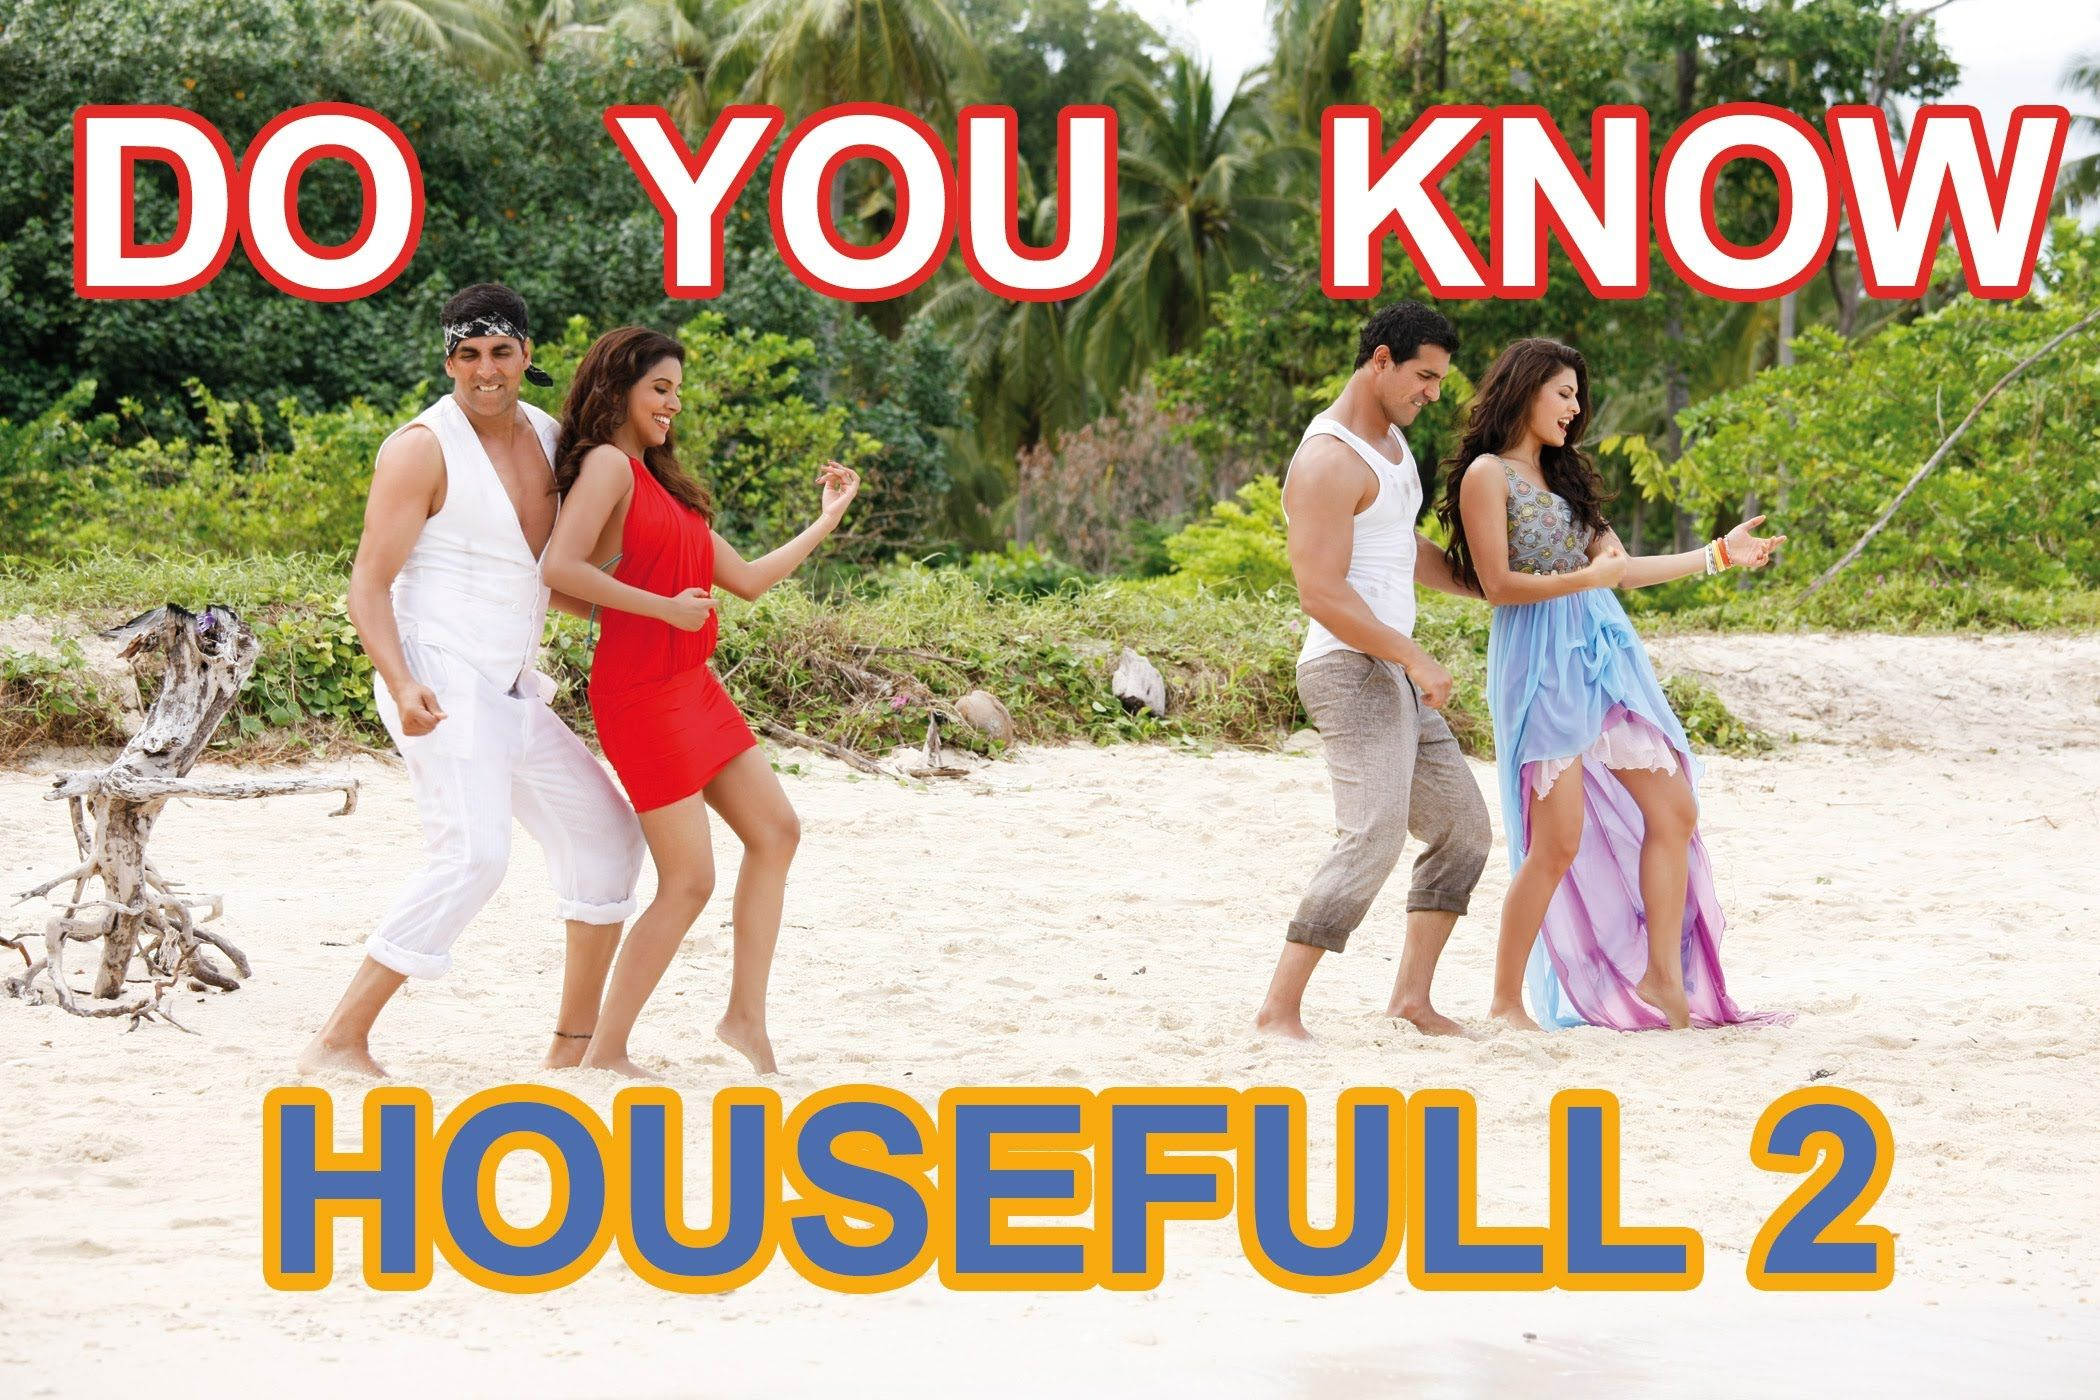 Do You Know Housefull 2 Full Video Song Official Akshay Kumar Asin Romcom Movies Bollywood Music Songs